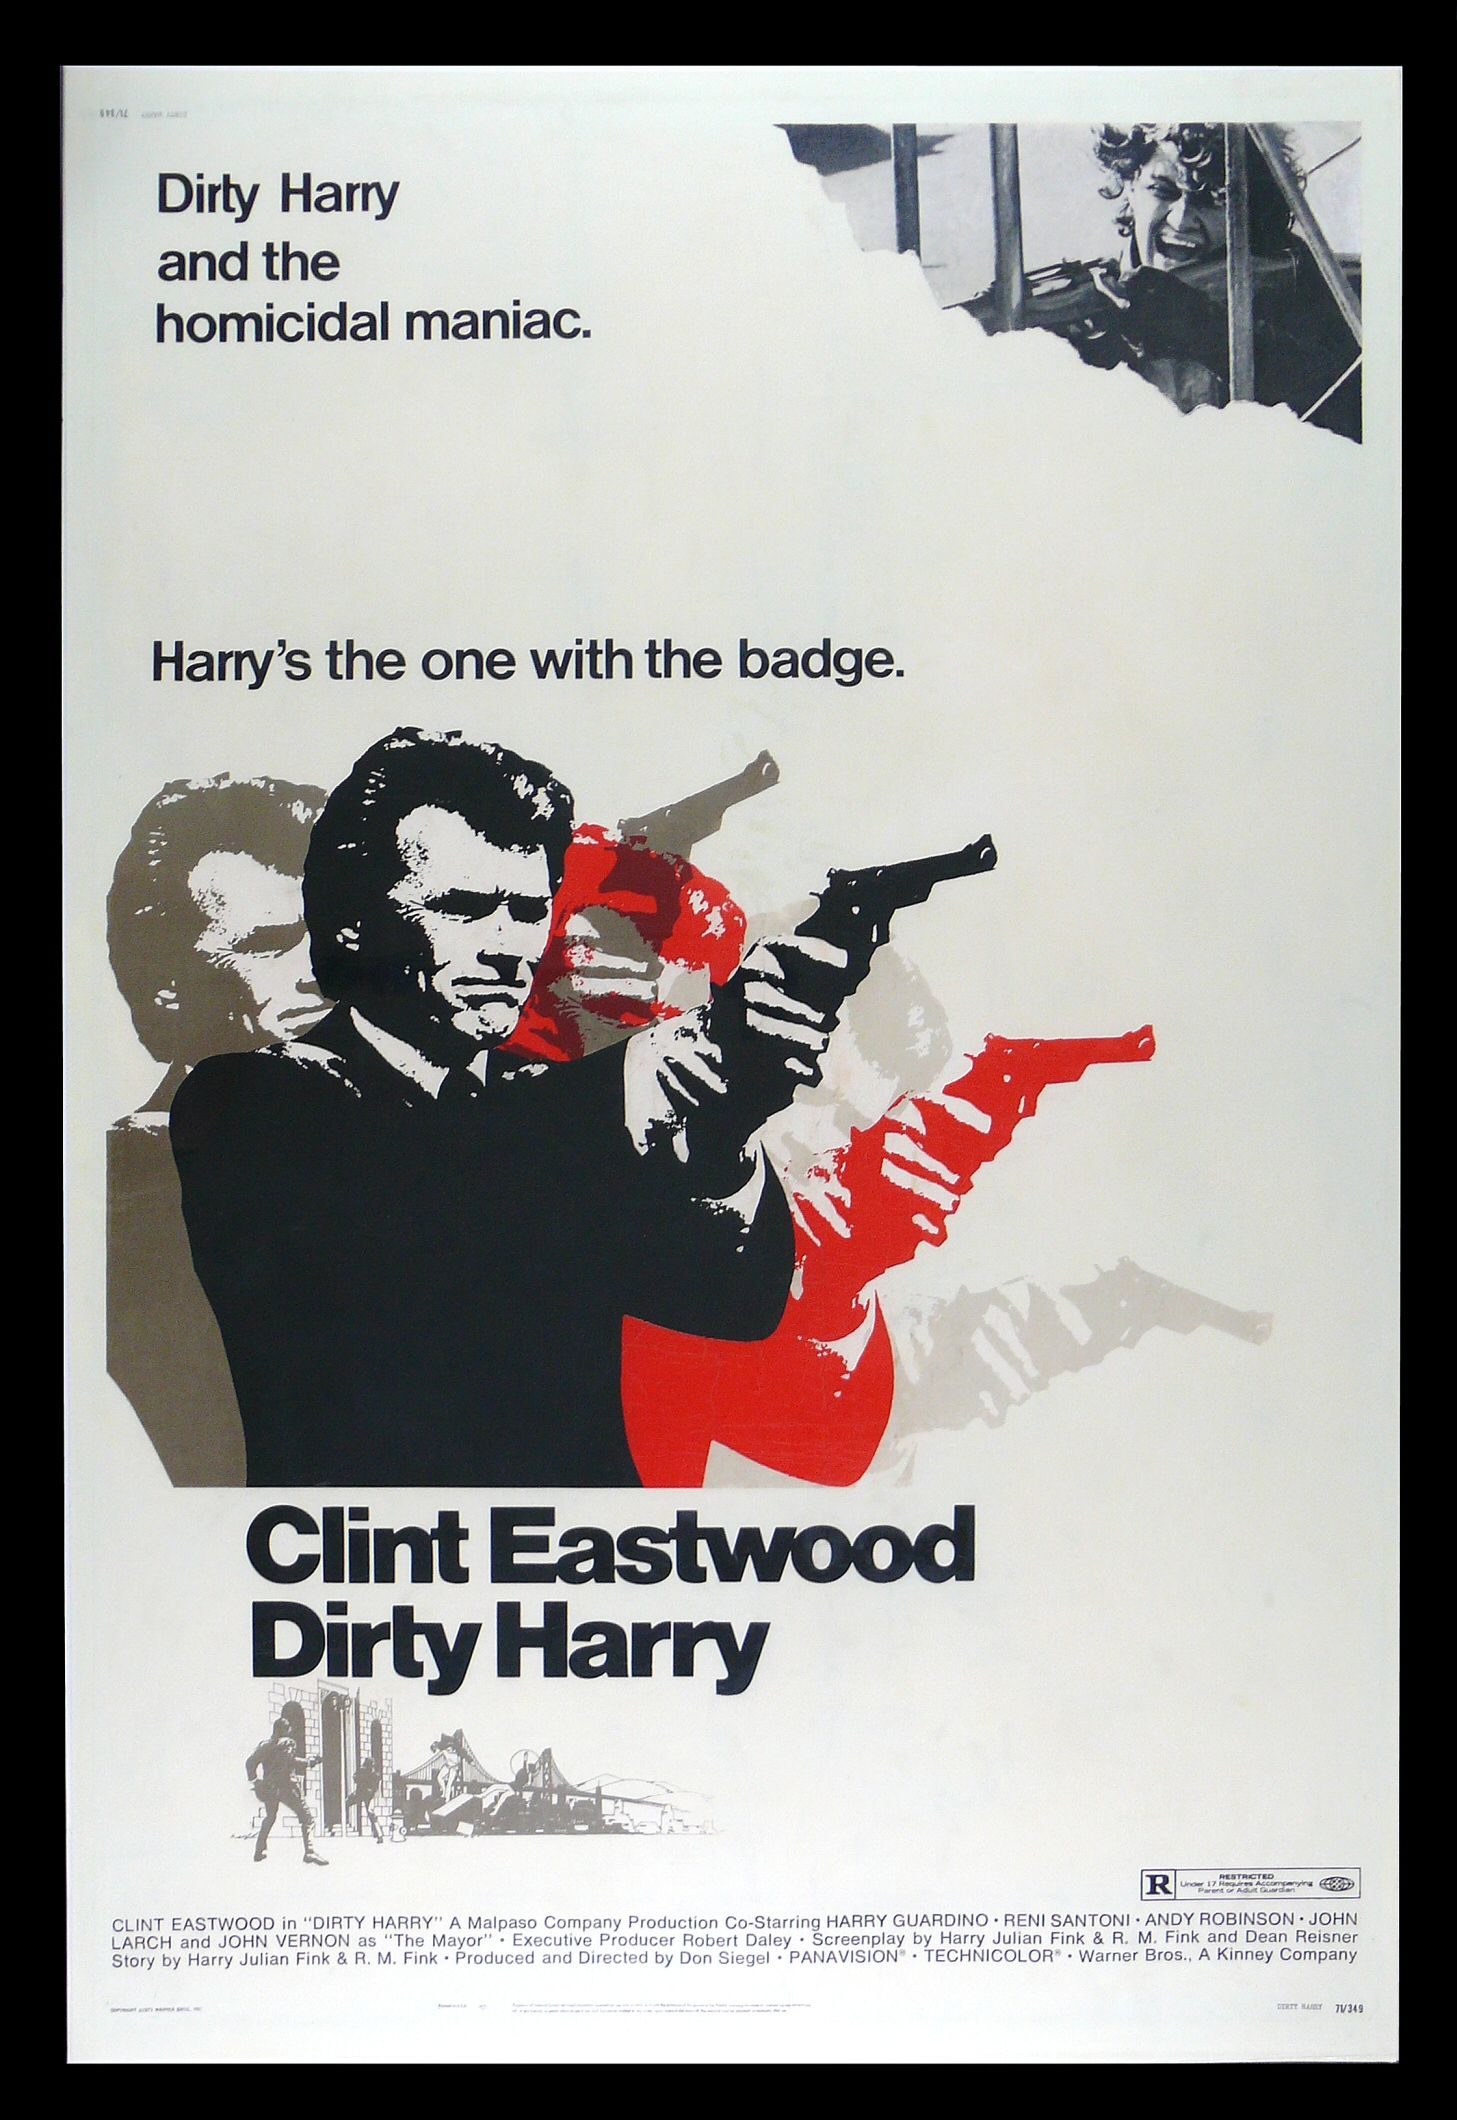 dirty harry cinemasterpieces 40x60 clint eastwood gun